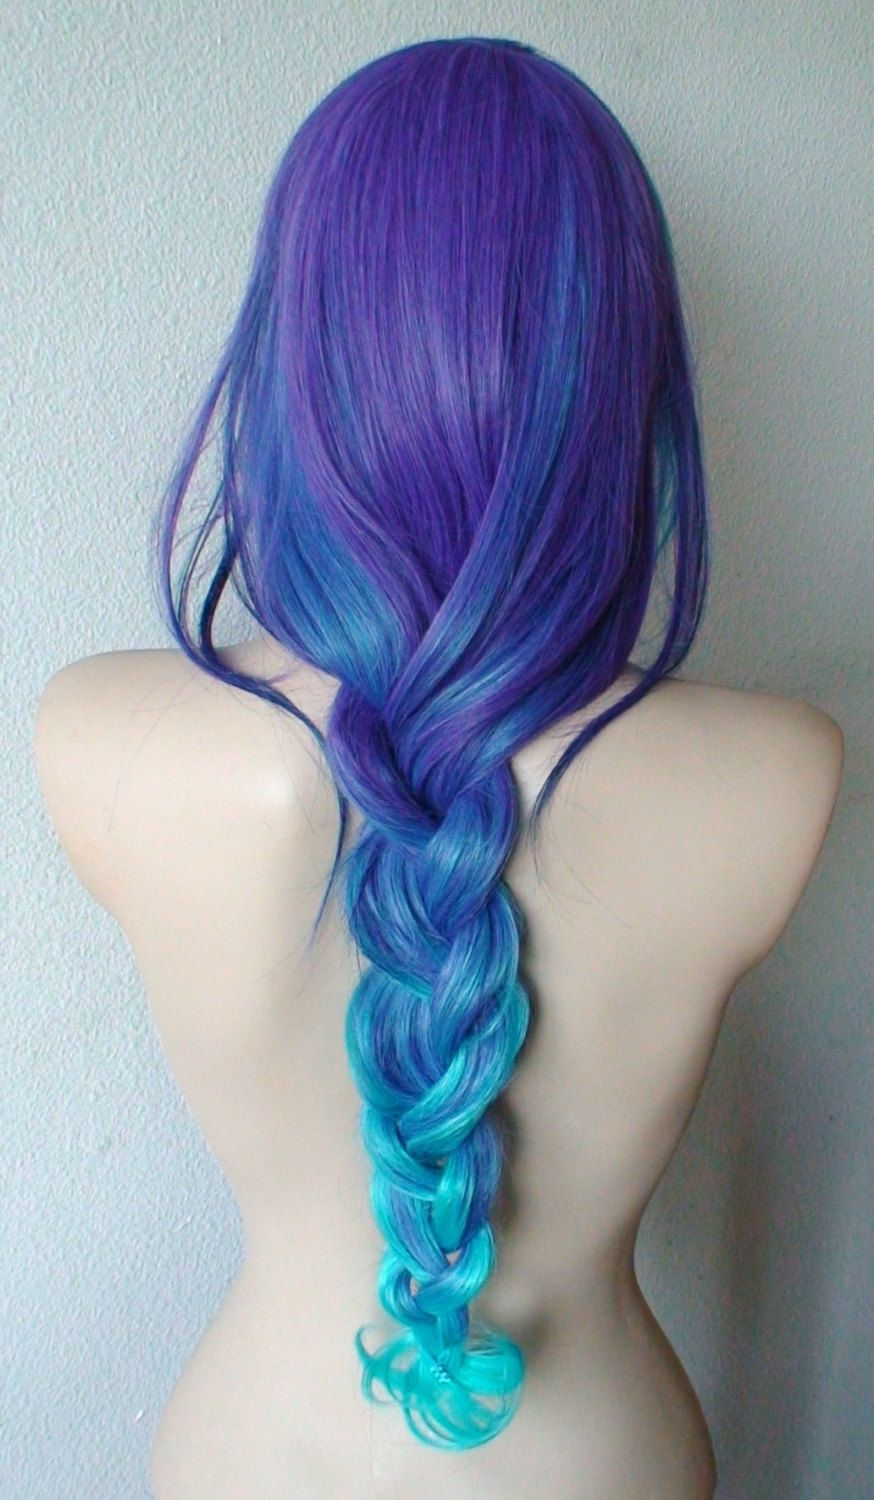 Teal purple blue ombre wig long curly hair with long by kekeshop